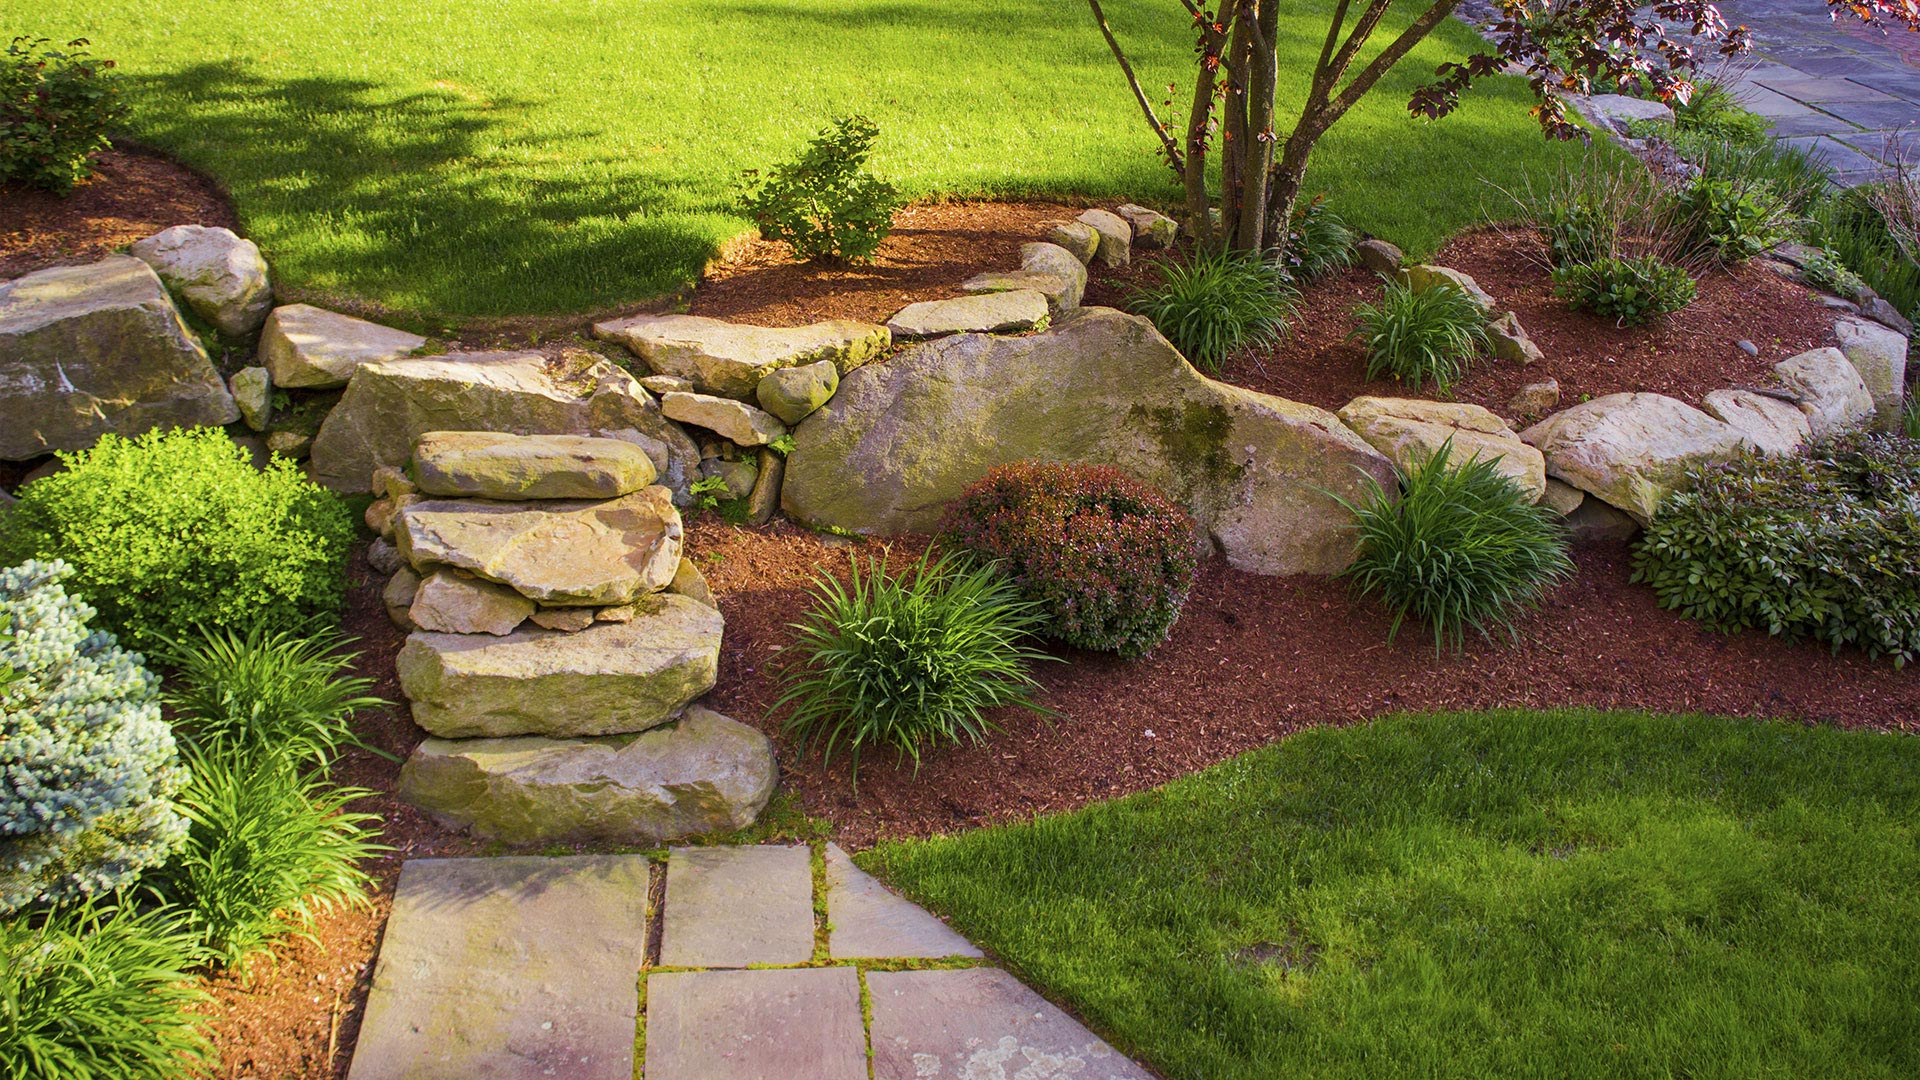 Tri Stars Landscaping And Snow Services LLC Landscaping, Mulching and Retaining Walls slide 3